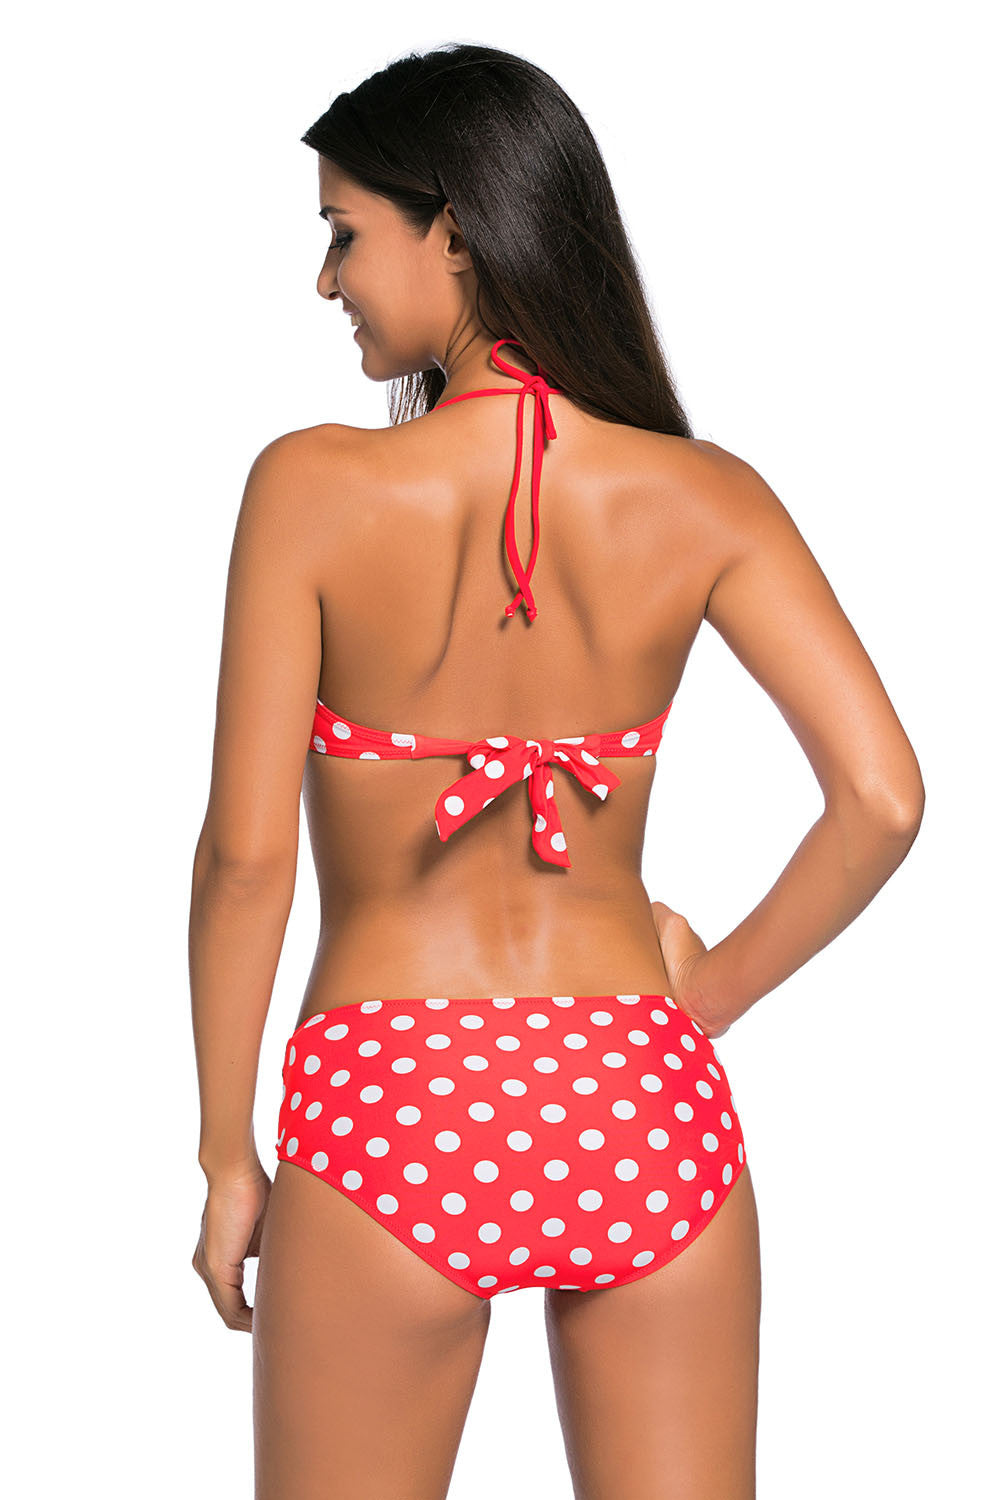 Vintage Red White Polka Dotted Bikini High Waist Bathing Suit